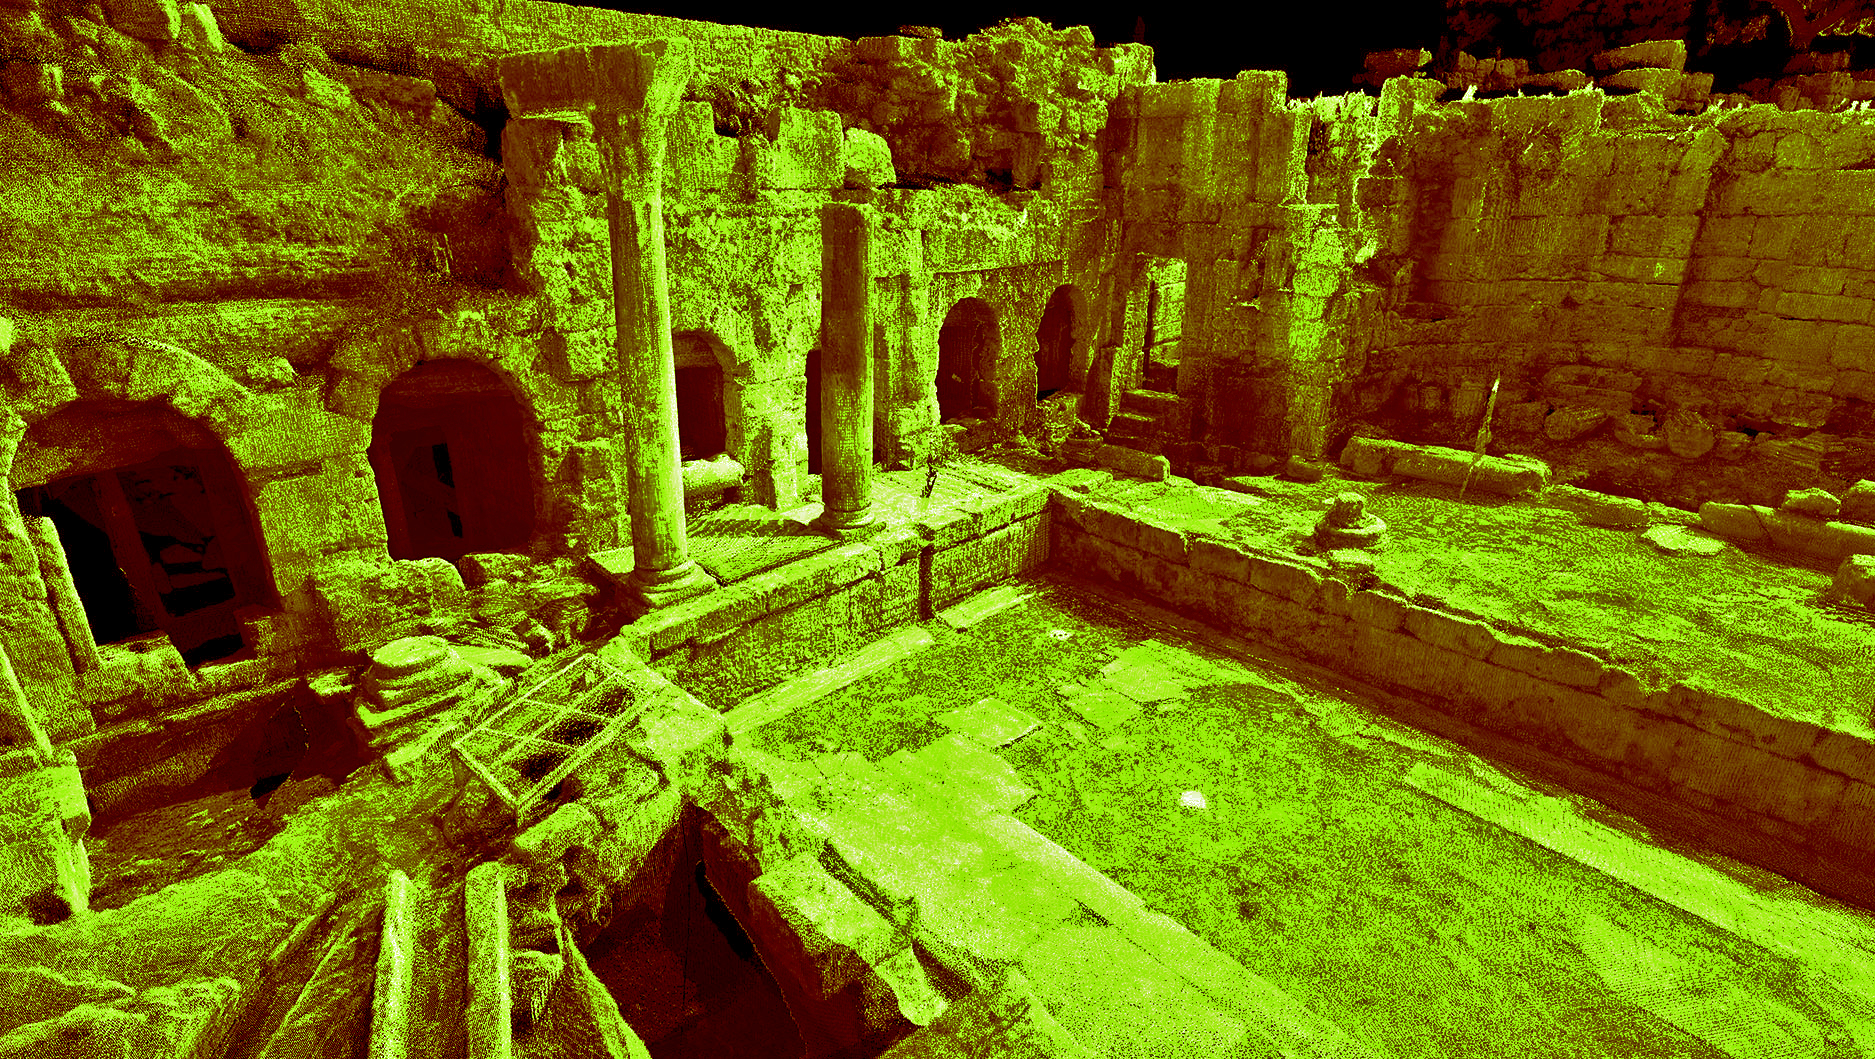 Laser scan data of the Peirene Fountain at Ancient Corinth in Greece. Image by CyArk